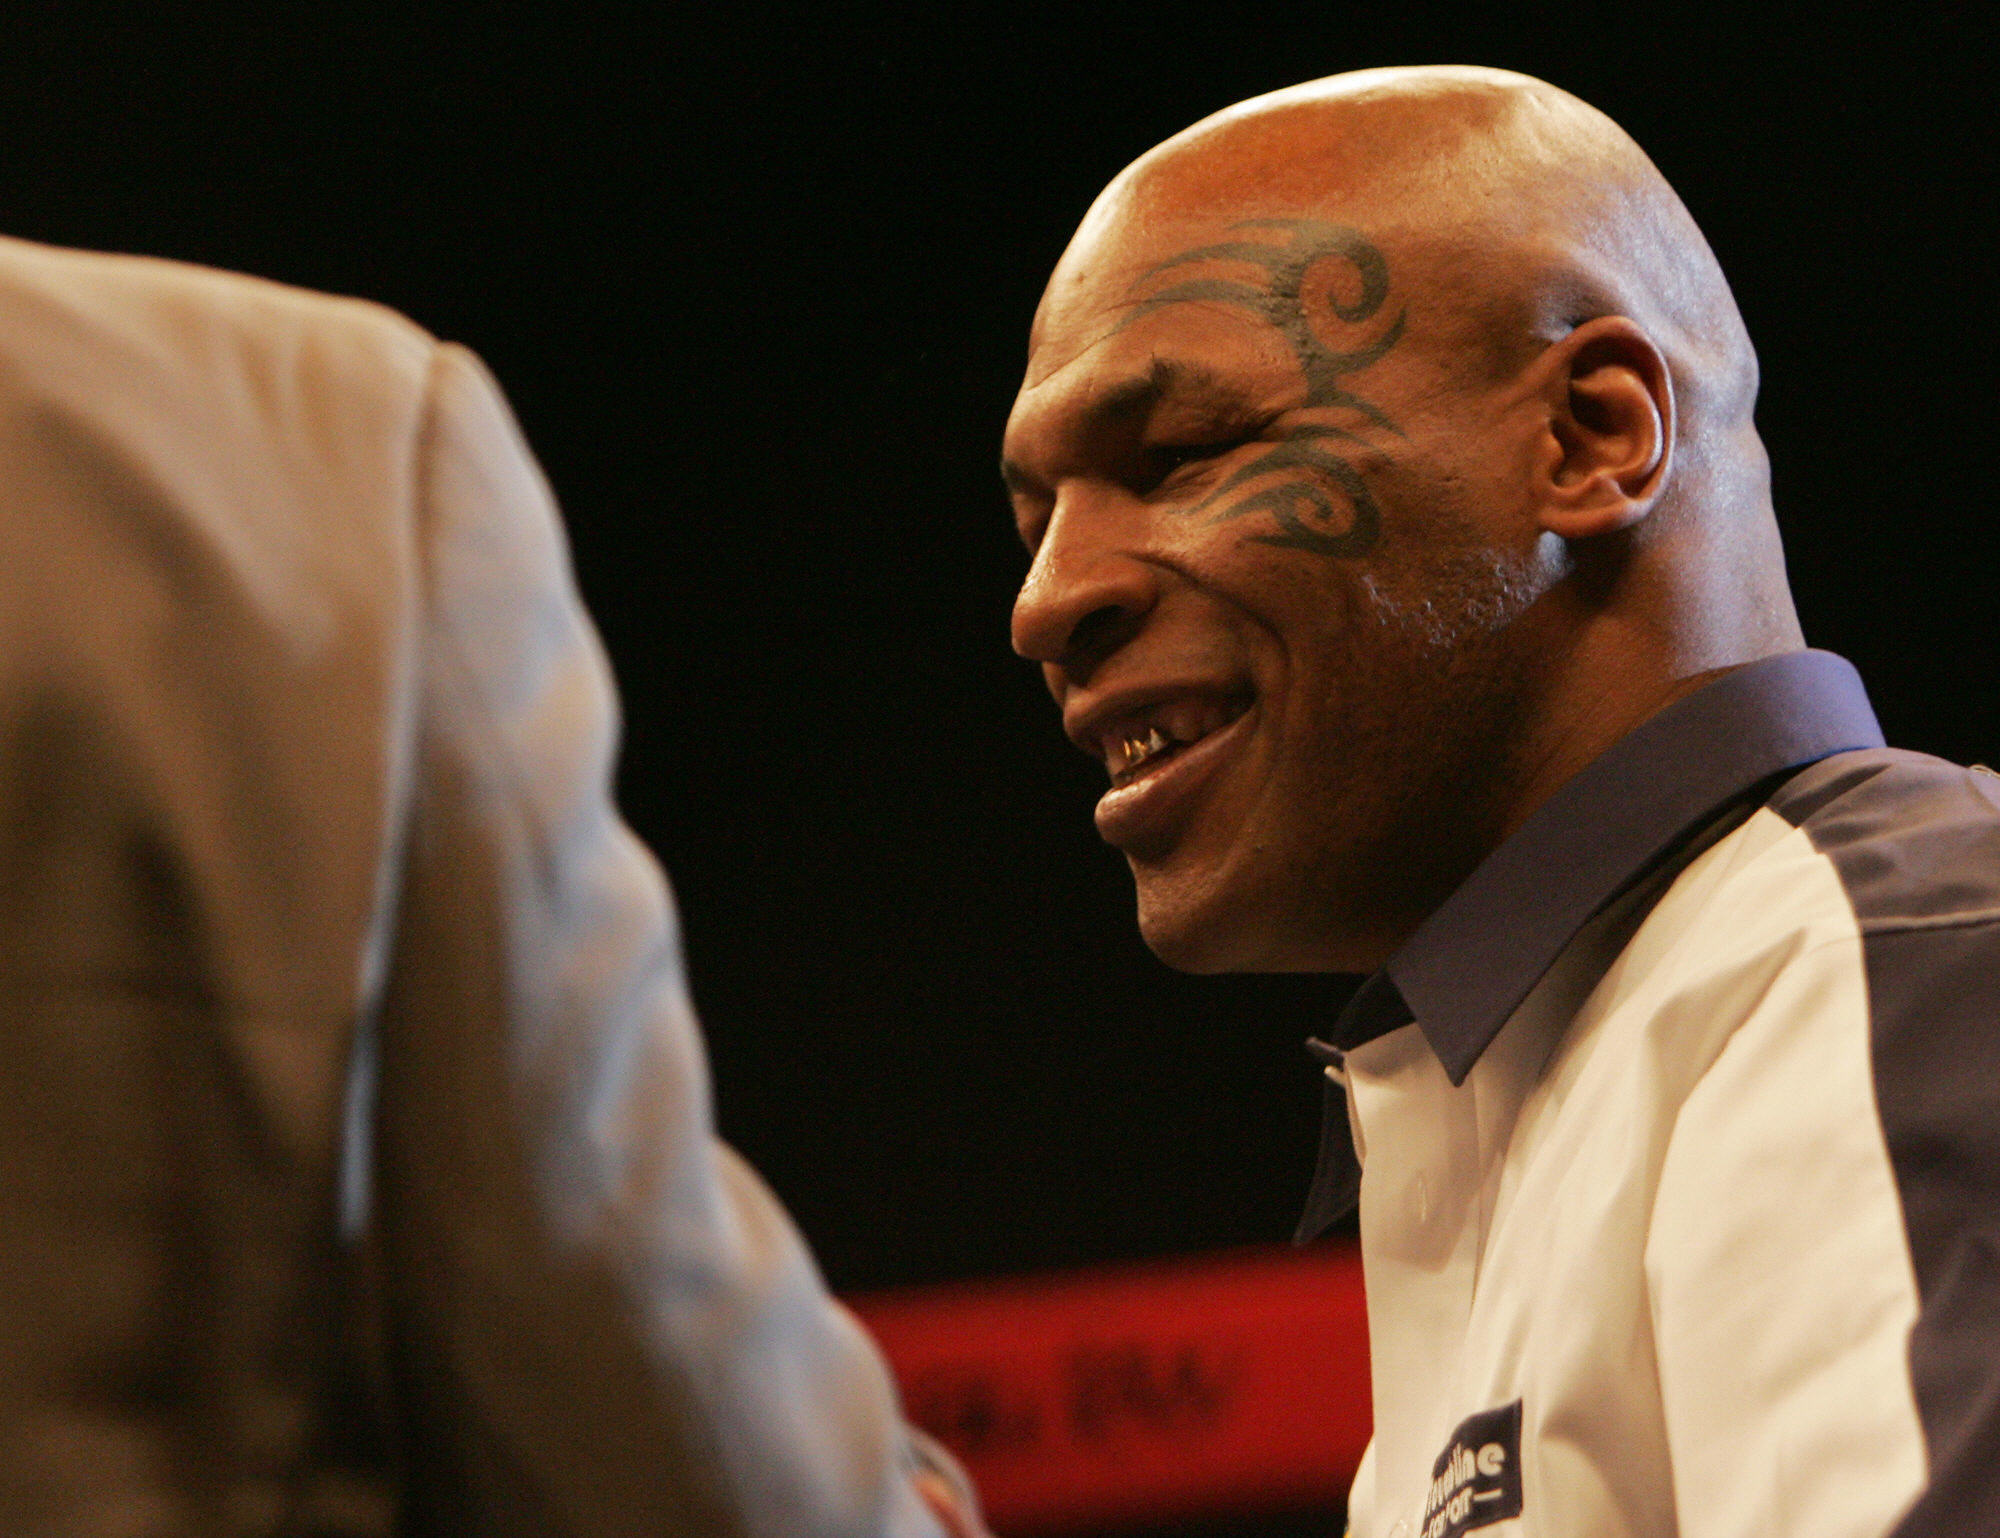 Mike Tyson smiles during an interview